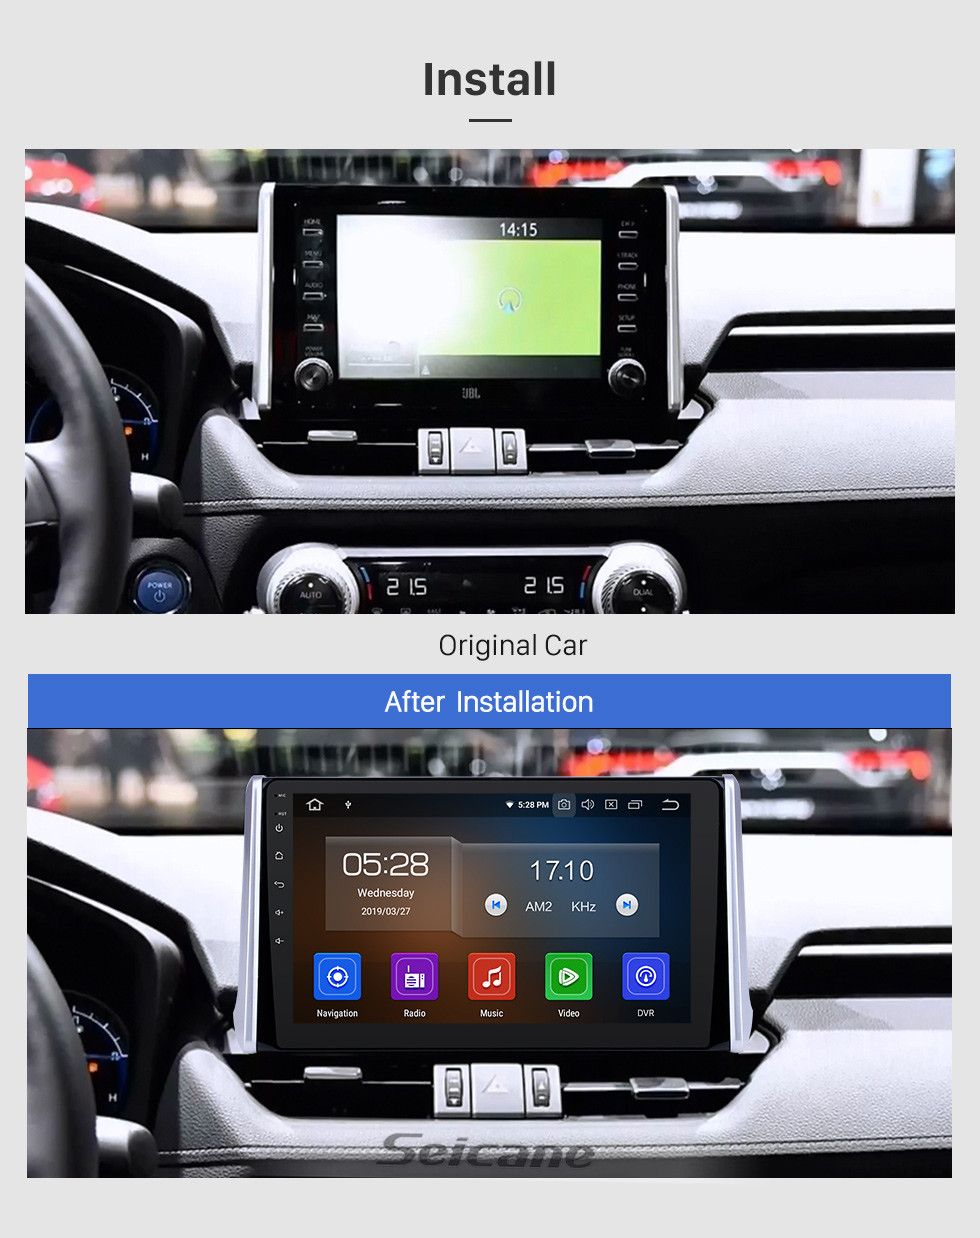 Seicane 10.1 inch 2019 Toyota RAV4 Touchscreen Android 9.0 GPS Navigation Radio Bluetooth Multimedia Player Carplay Music AUX support Backup camera 1080P